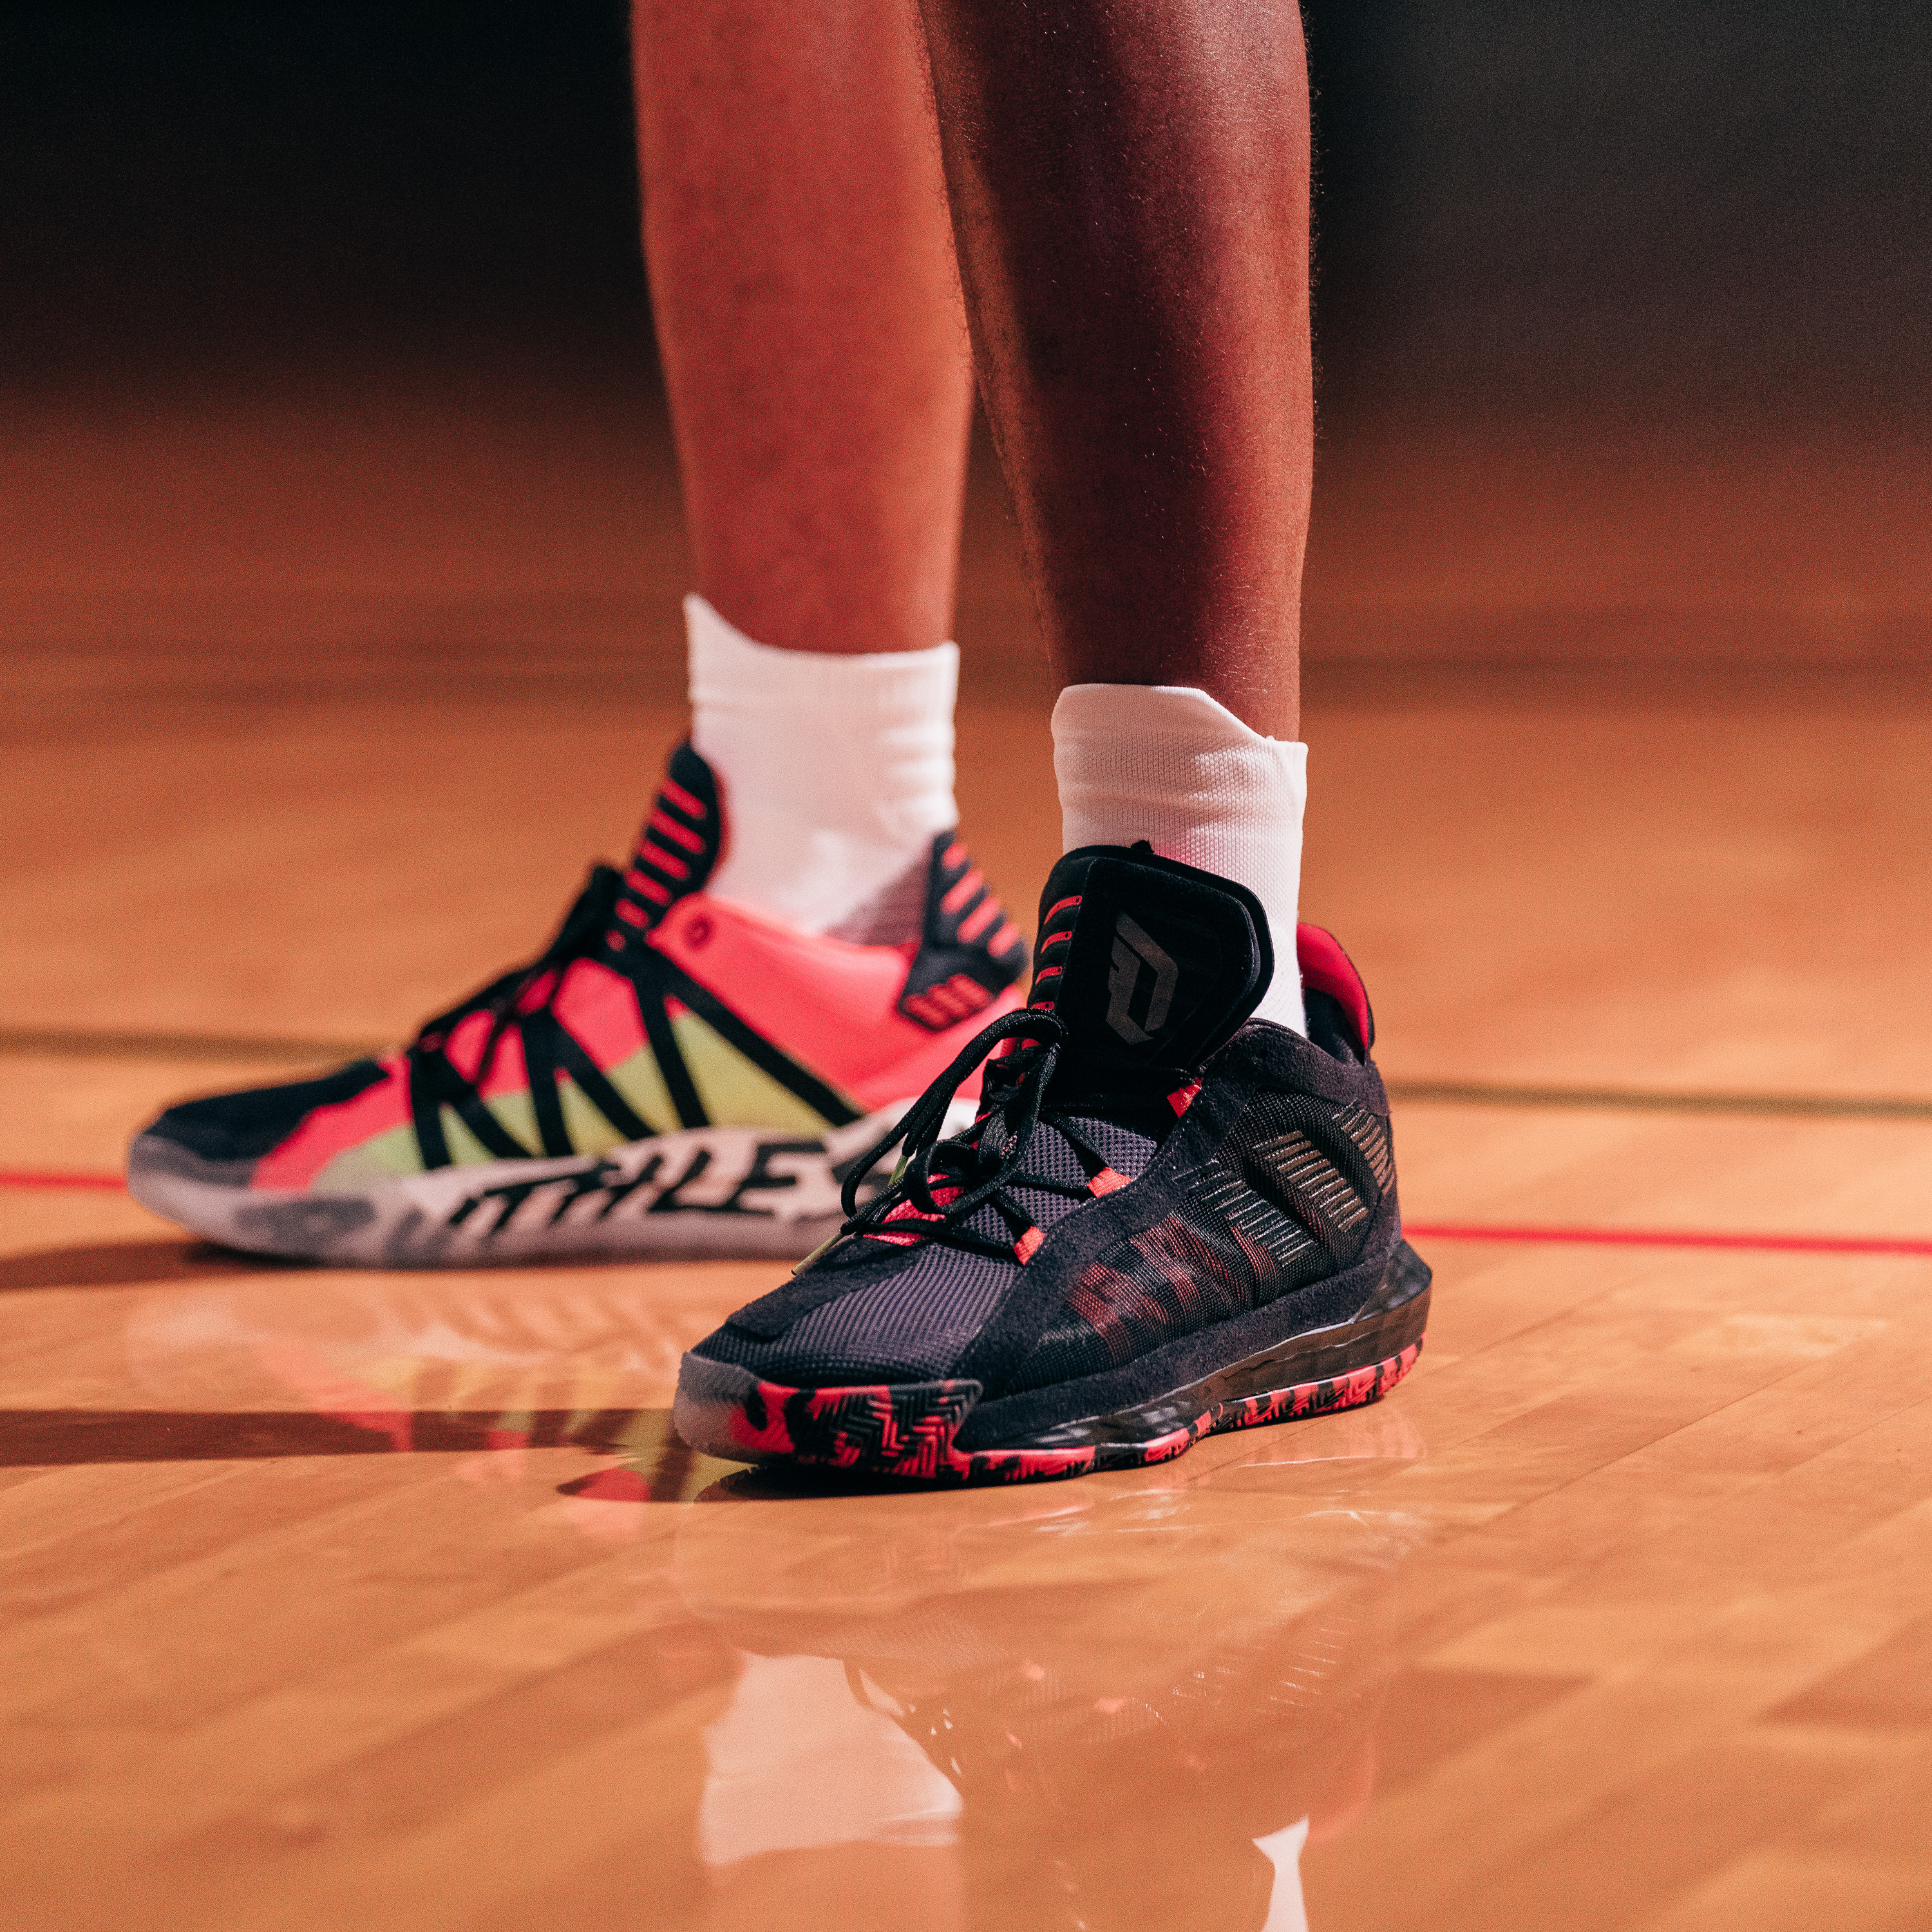 Damian Lillard S Latest Adidas Shoe Unveiled The Dame 6 Ruthless Hits Stores November 29 Oregonlive Com